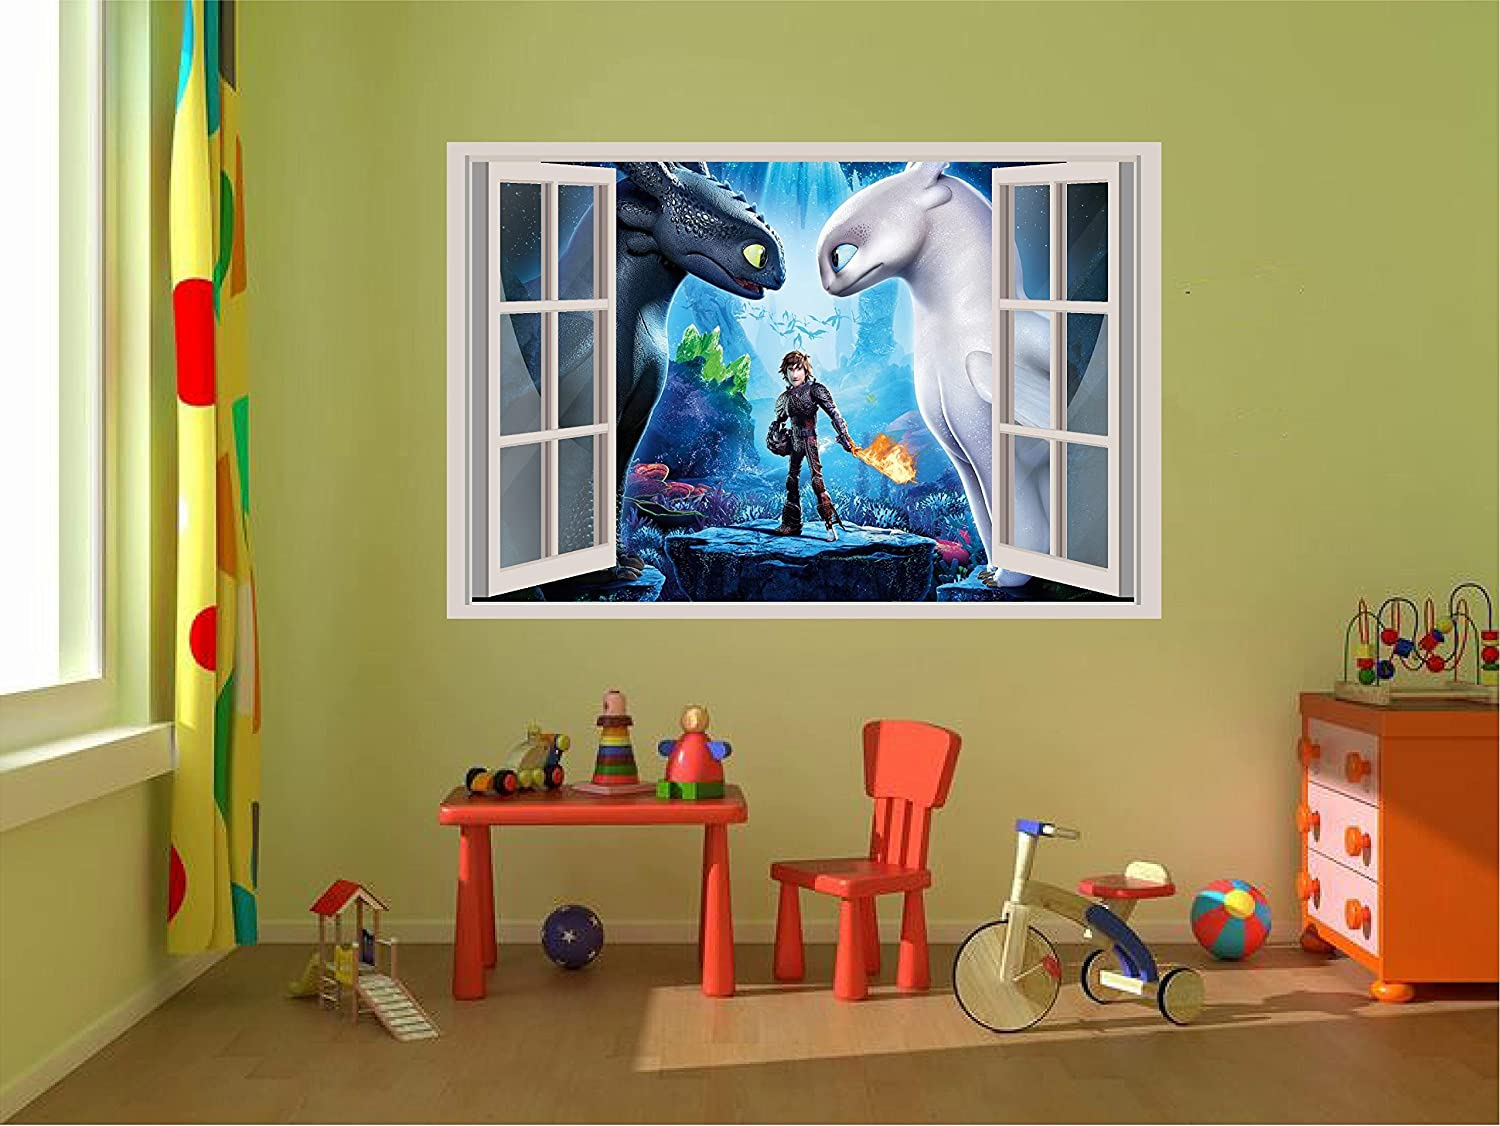 How to train your dragon Toothless Light fury 3D Wall Decal Sticker 18, 24, 36 or 52 17 24 36 or 52 17